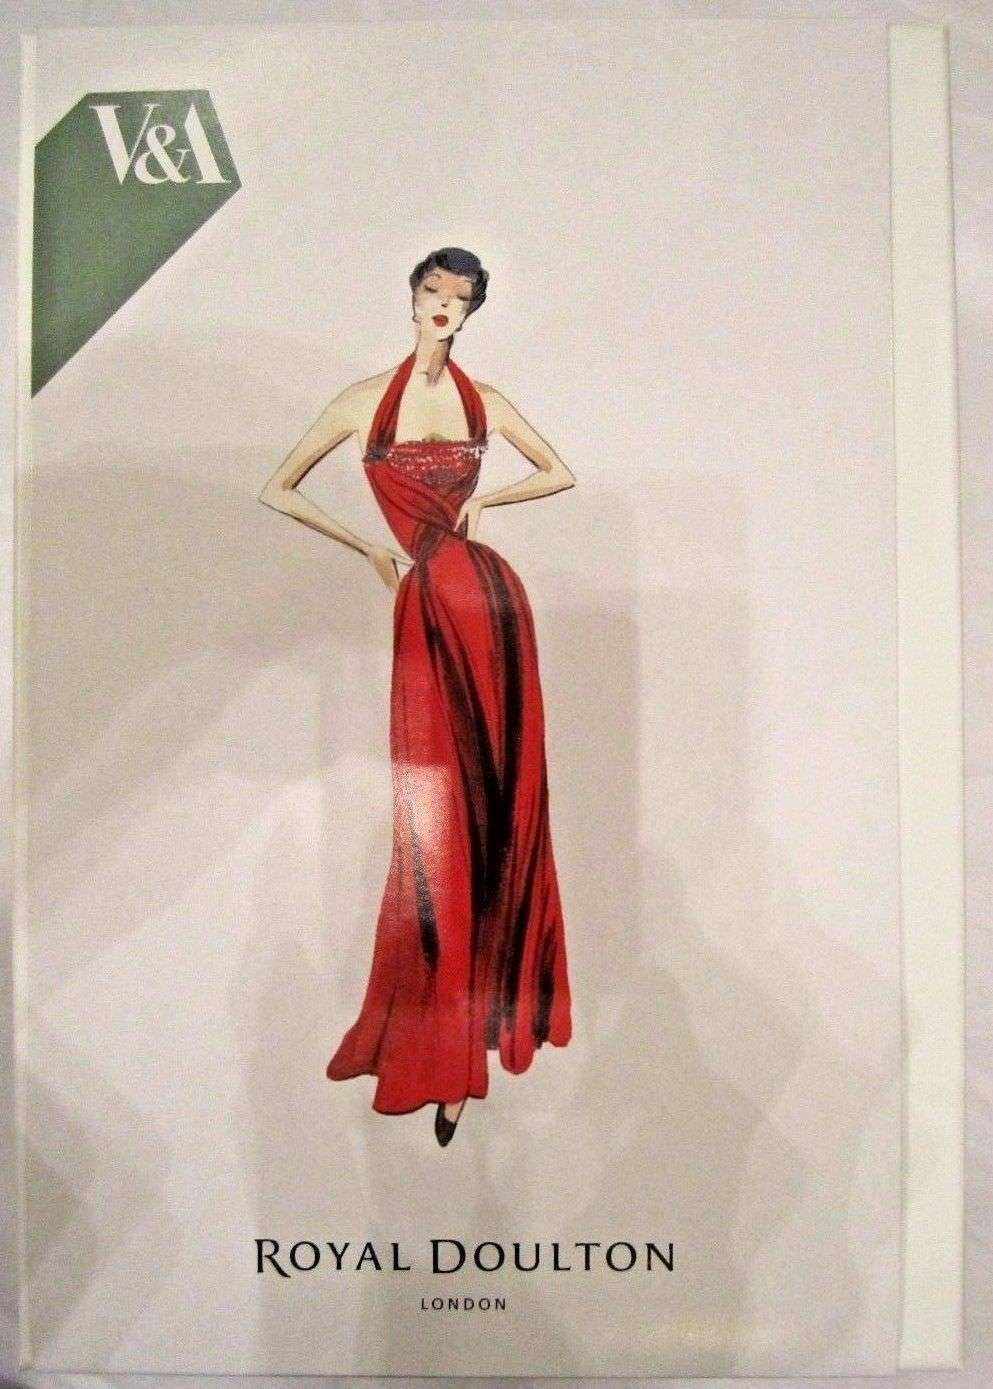 Royal Doulton Yolande Fashion Figurine 1950's Red Ball Gown V & A Museum NEW image 2